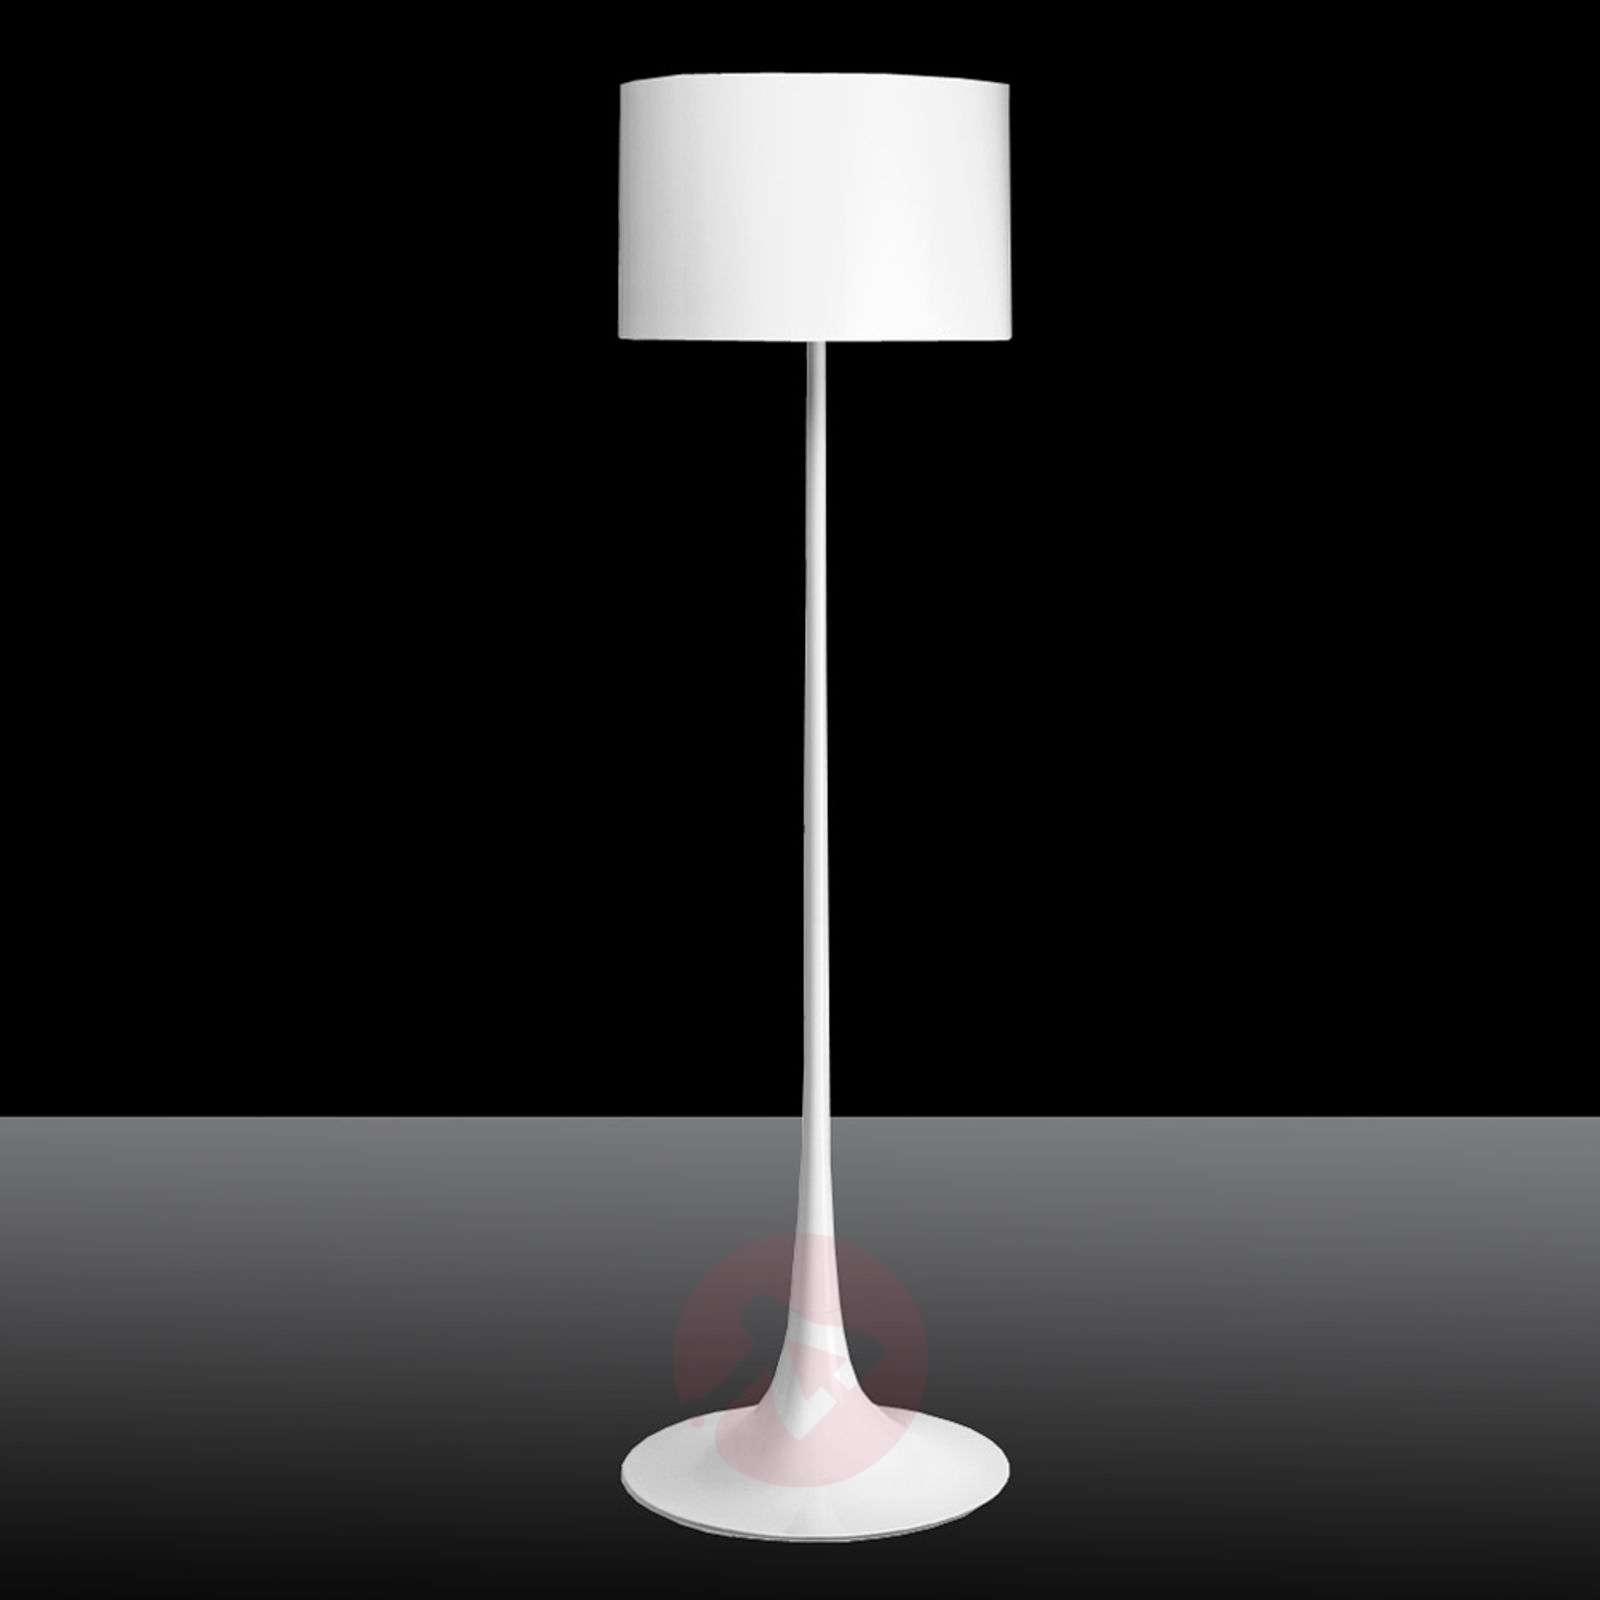 Lampadaire Spun Light F by FLOS-3510142X-01